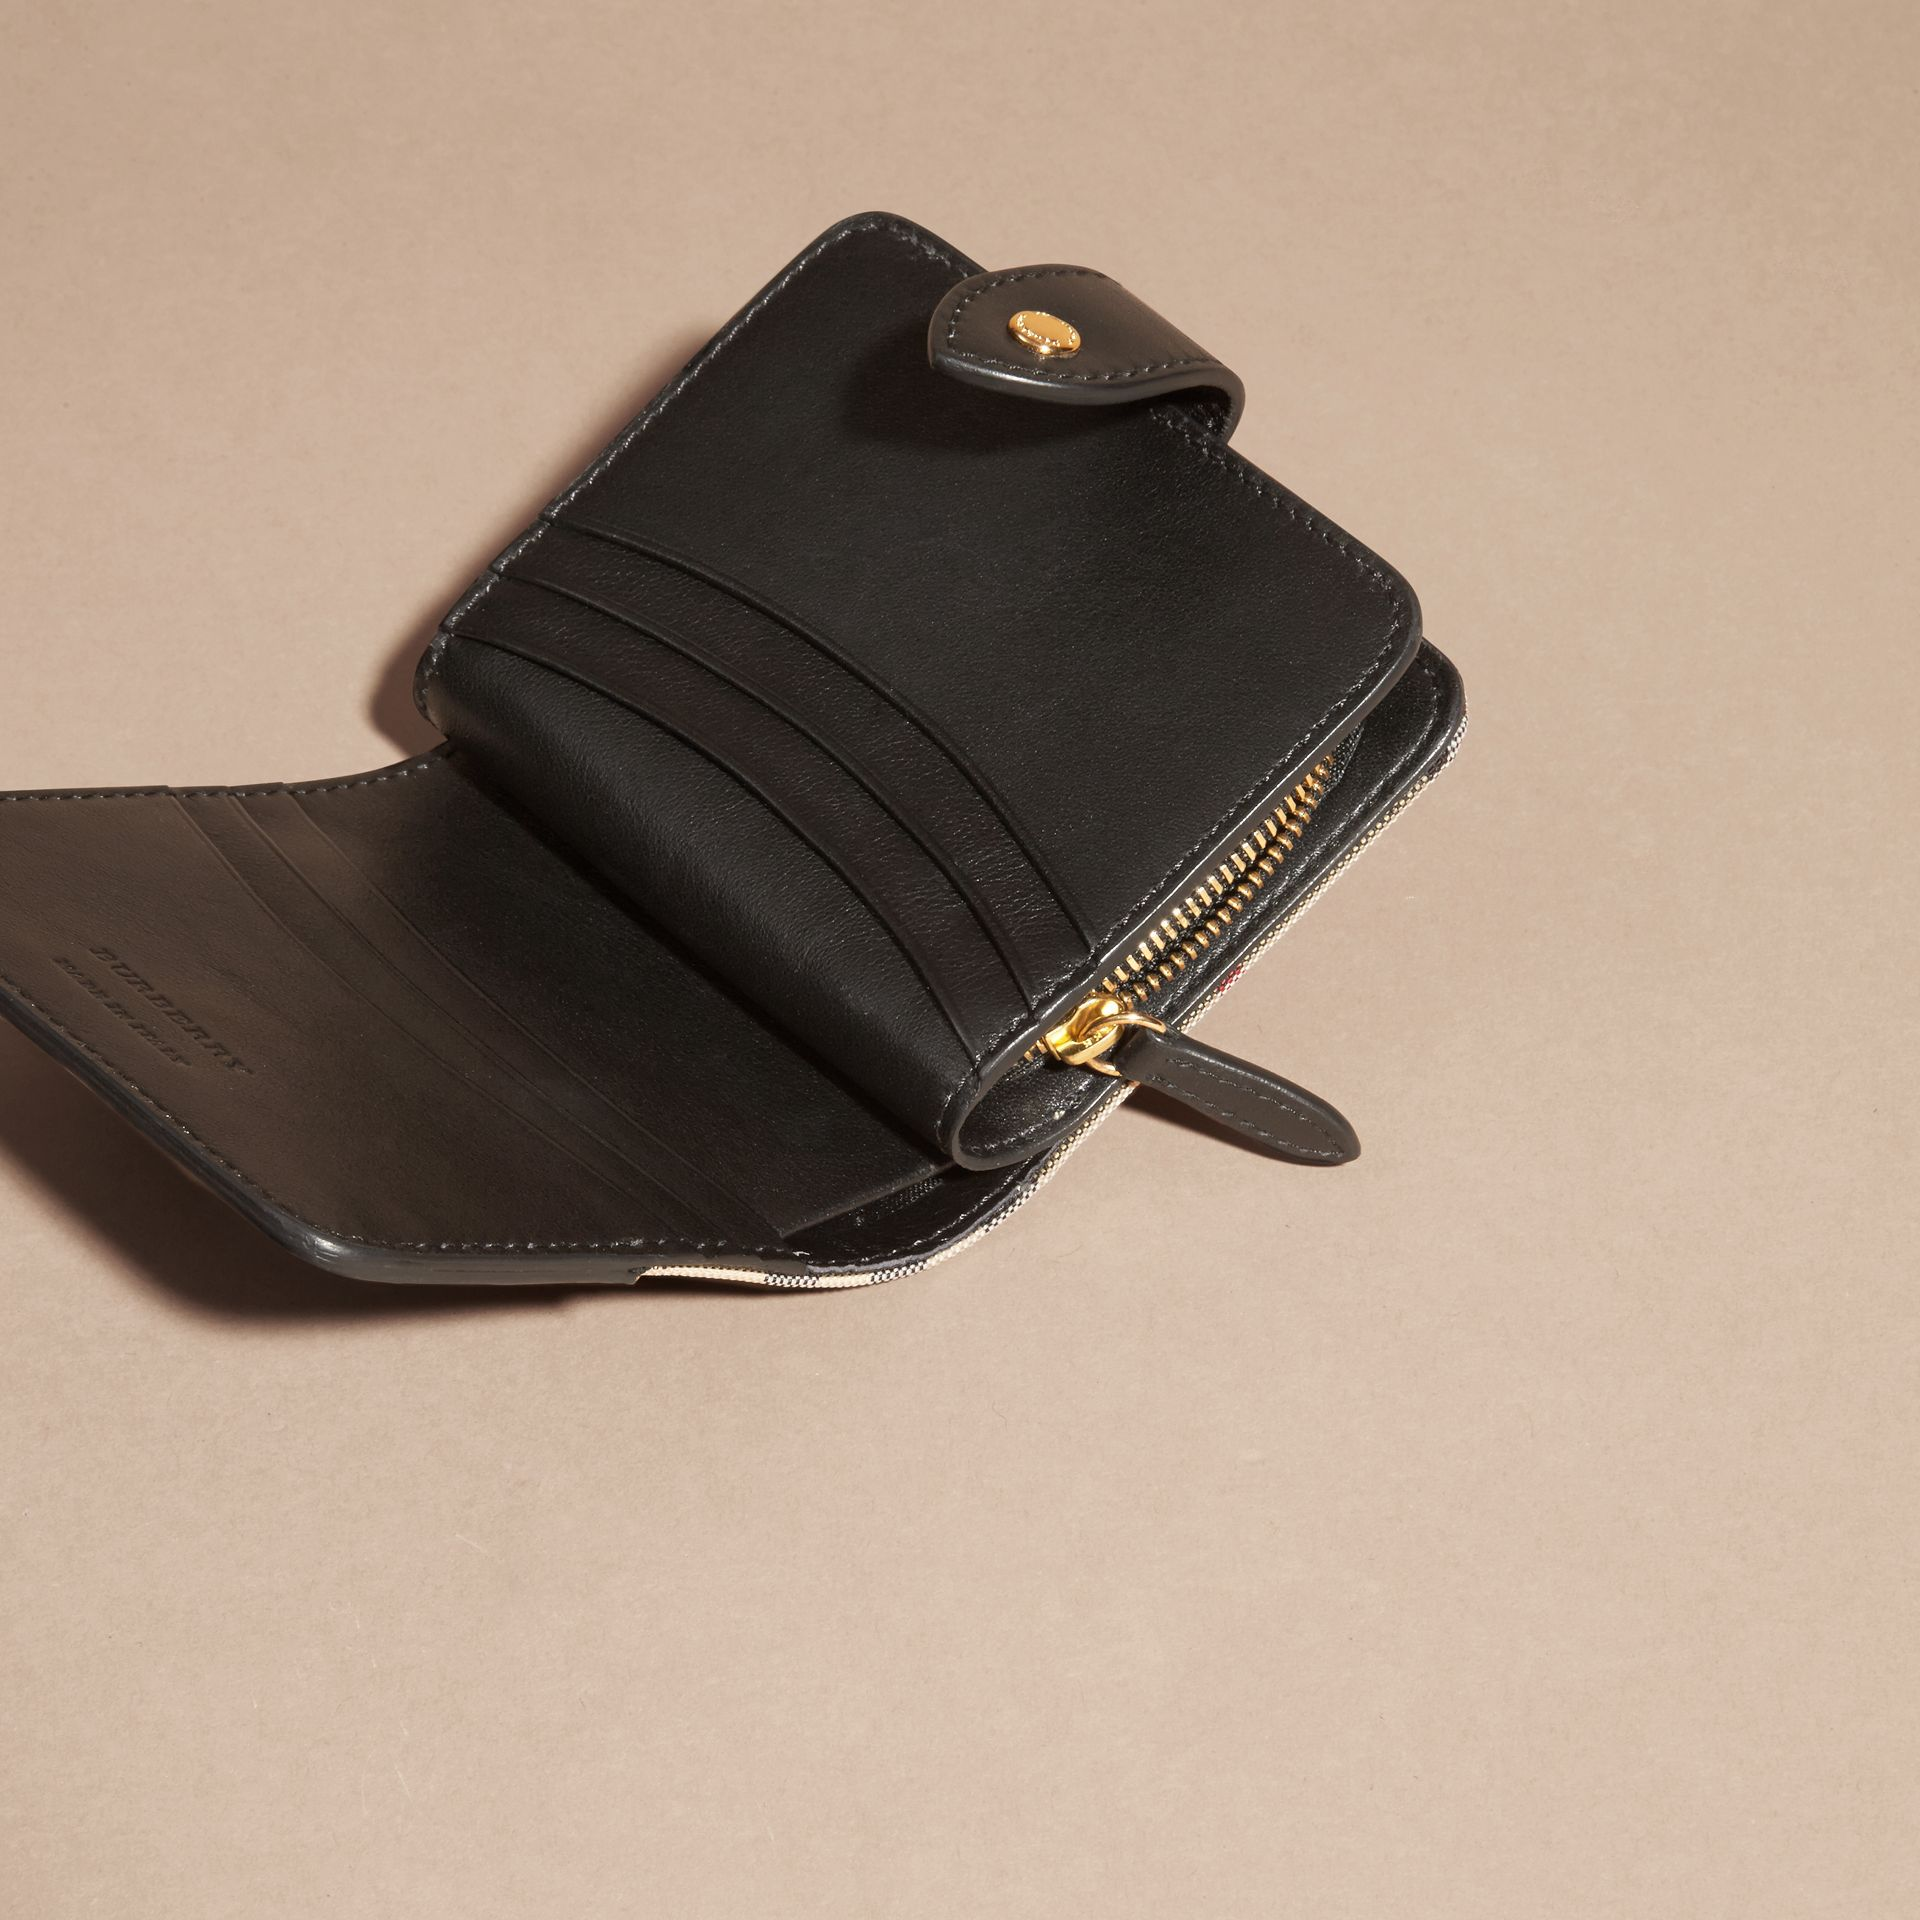 Black Horseferry Check and Leather Wallet Black - gallery image 5